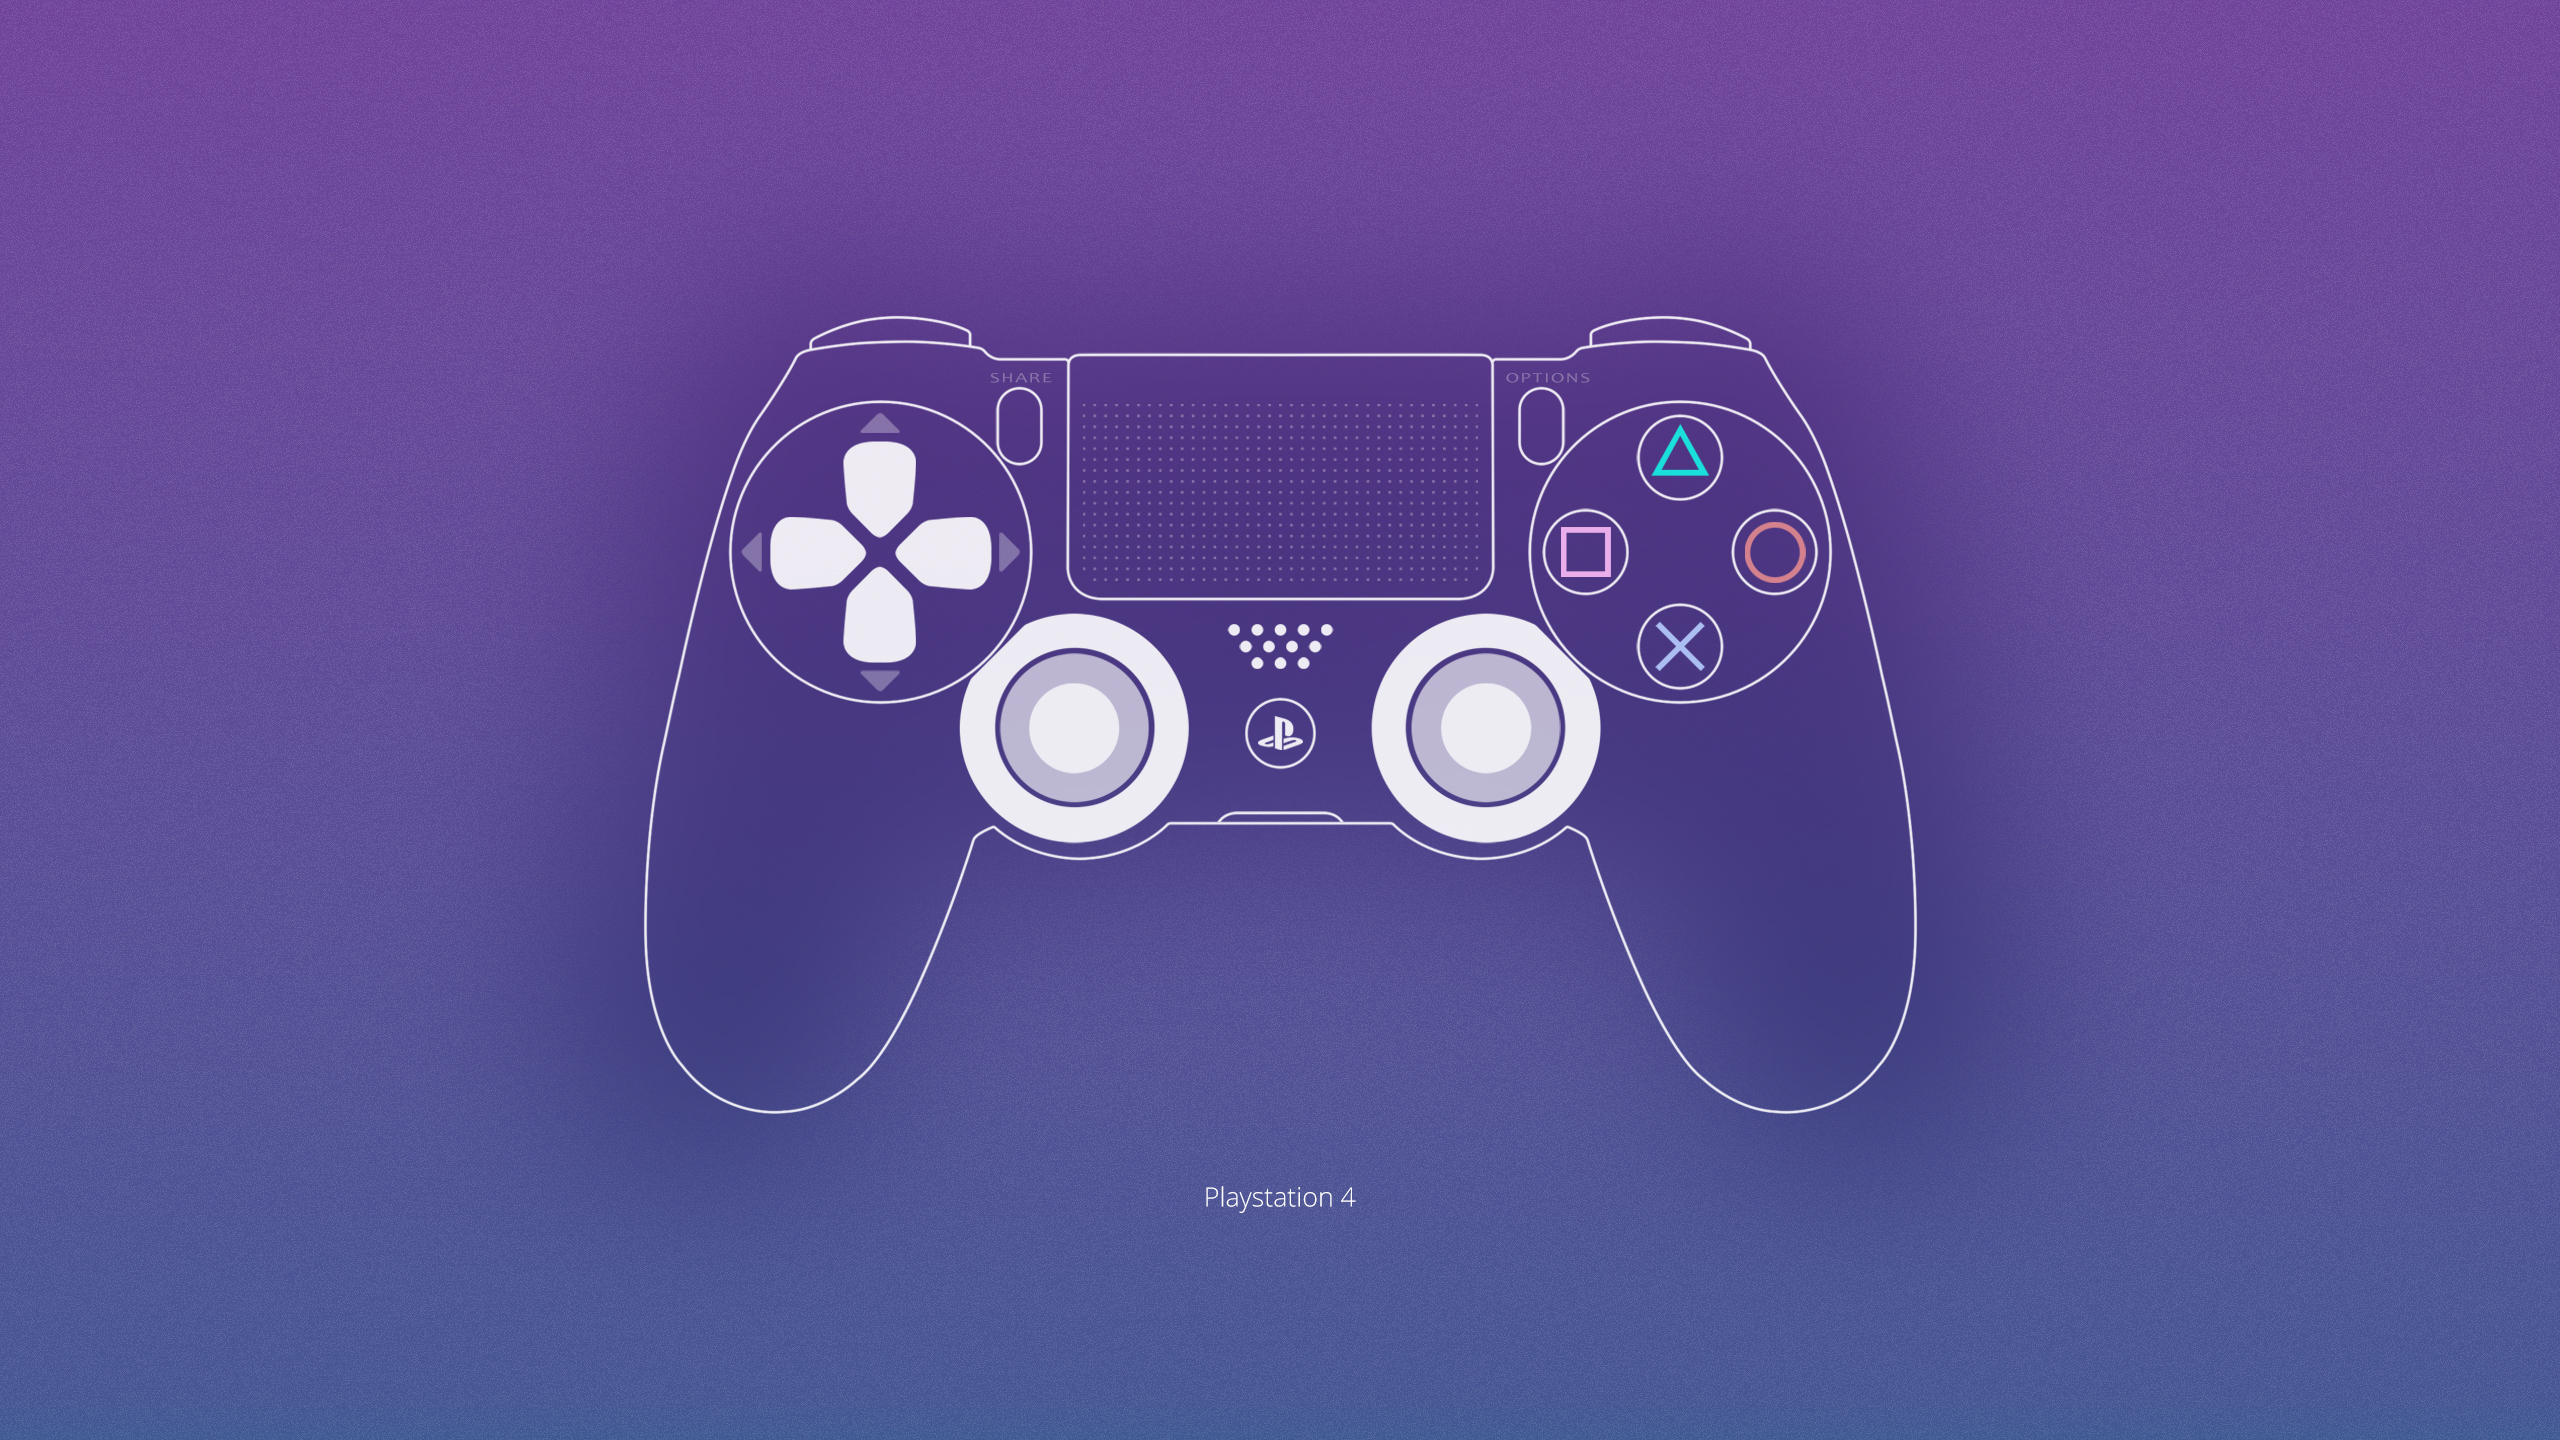 2560x1440 Pictures Gamepad Dualshock Console Ps4 Computers Painting 2560x1440